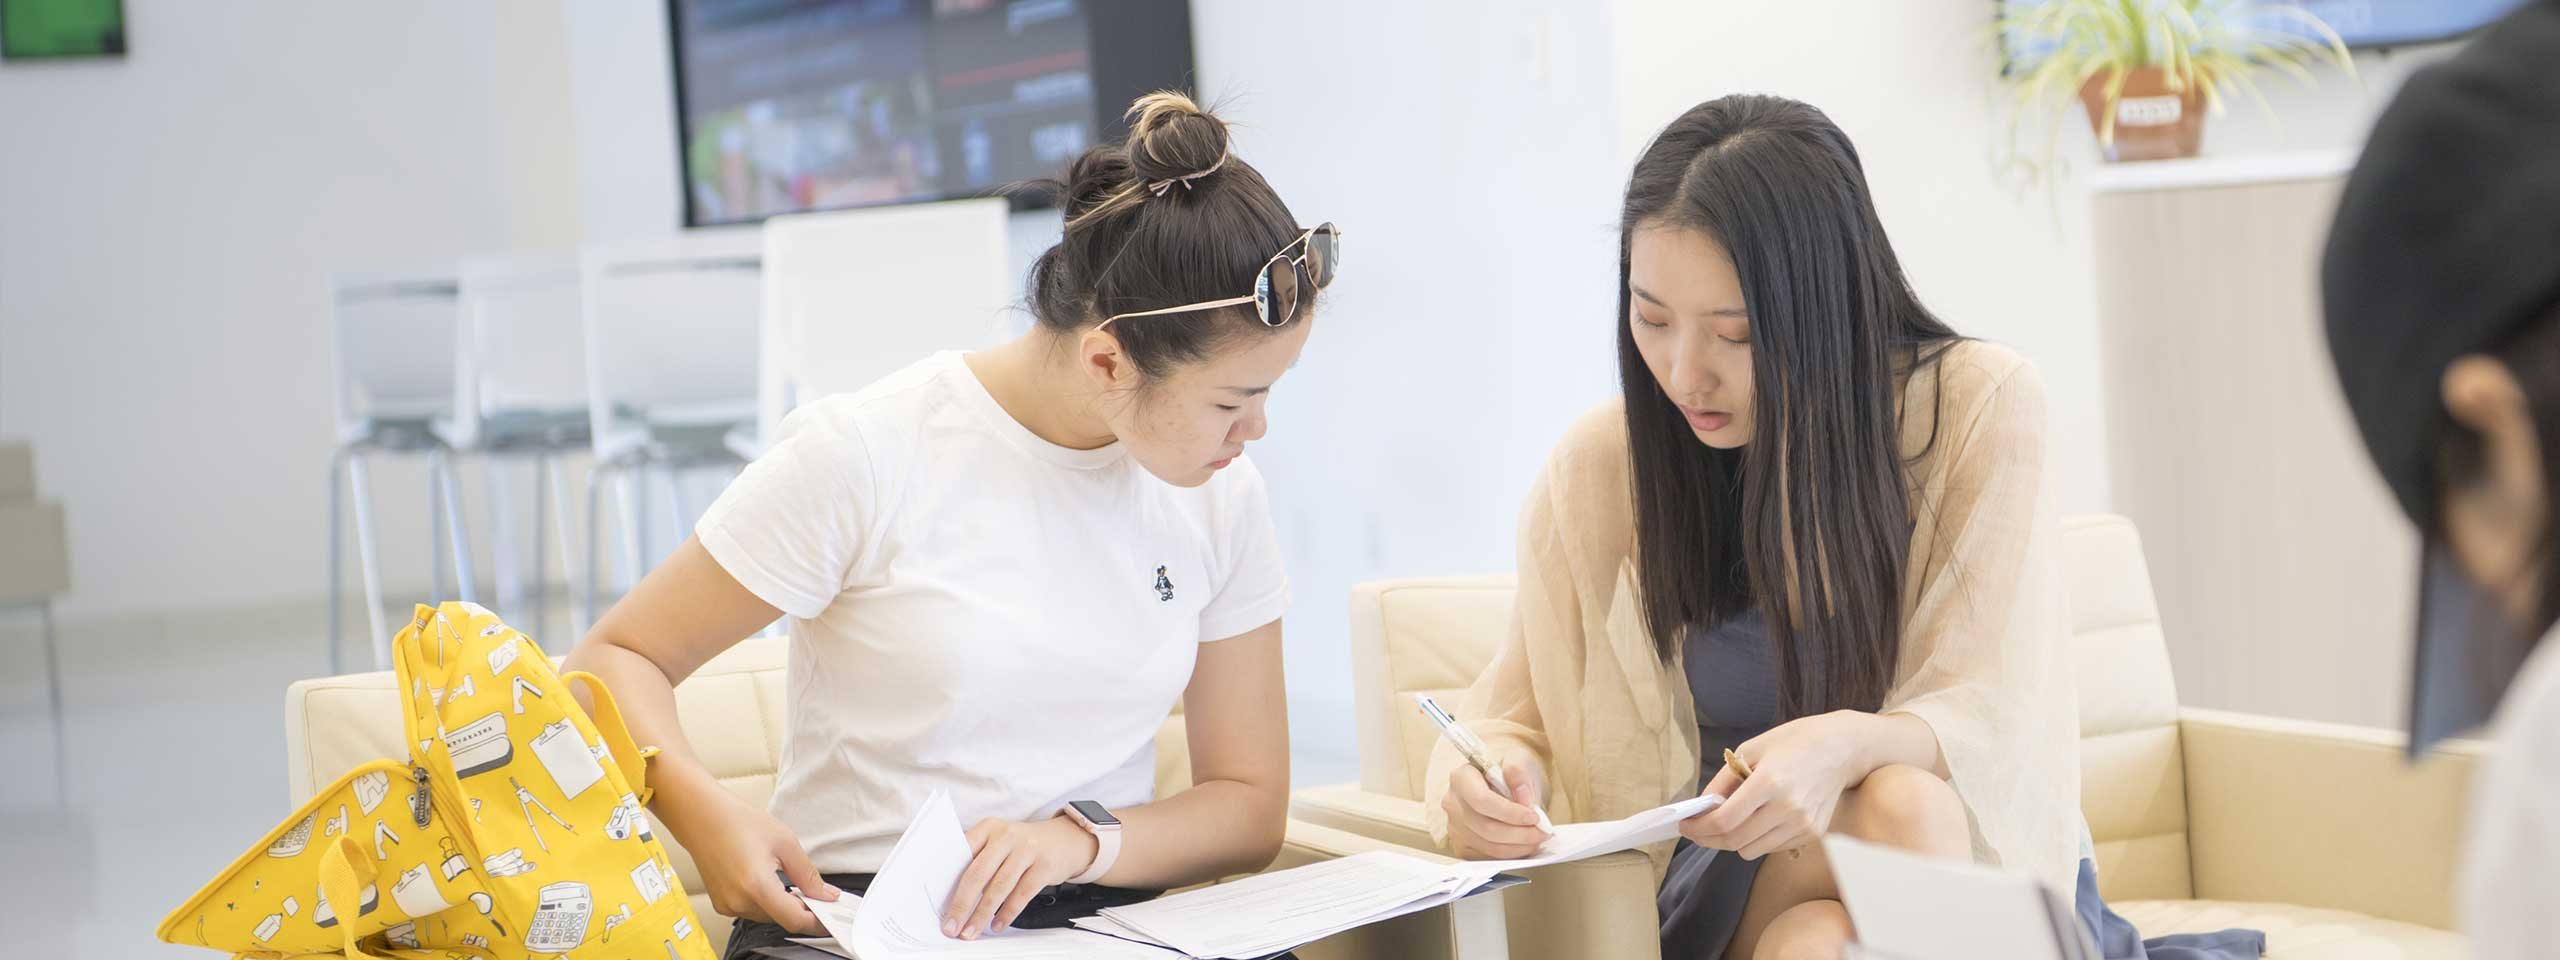 Case Western Reserve University One Of The Nations Best Pes 2017 17 Update 2018 Bip Aio Beautiful Indonesia Two Female Students Sitting In Mandel School Working On Assignment